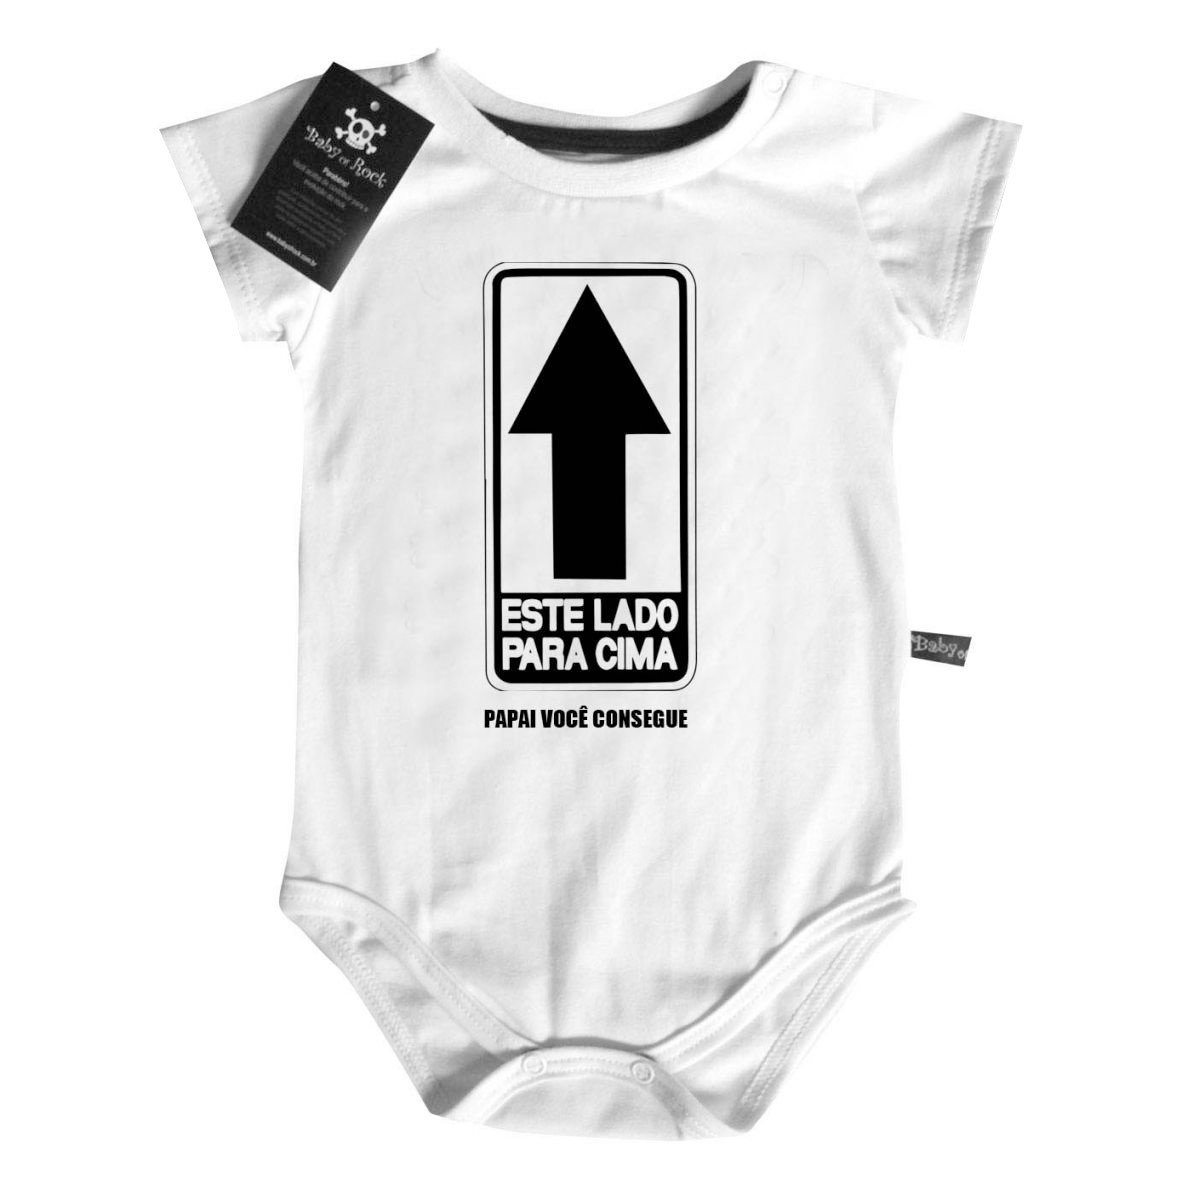 Body Baby DIvertido - Este Lado para Cima - White  - Baby Monster - Body Bebe